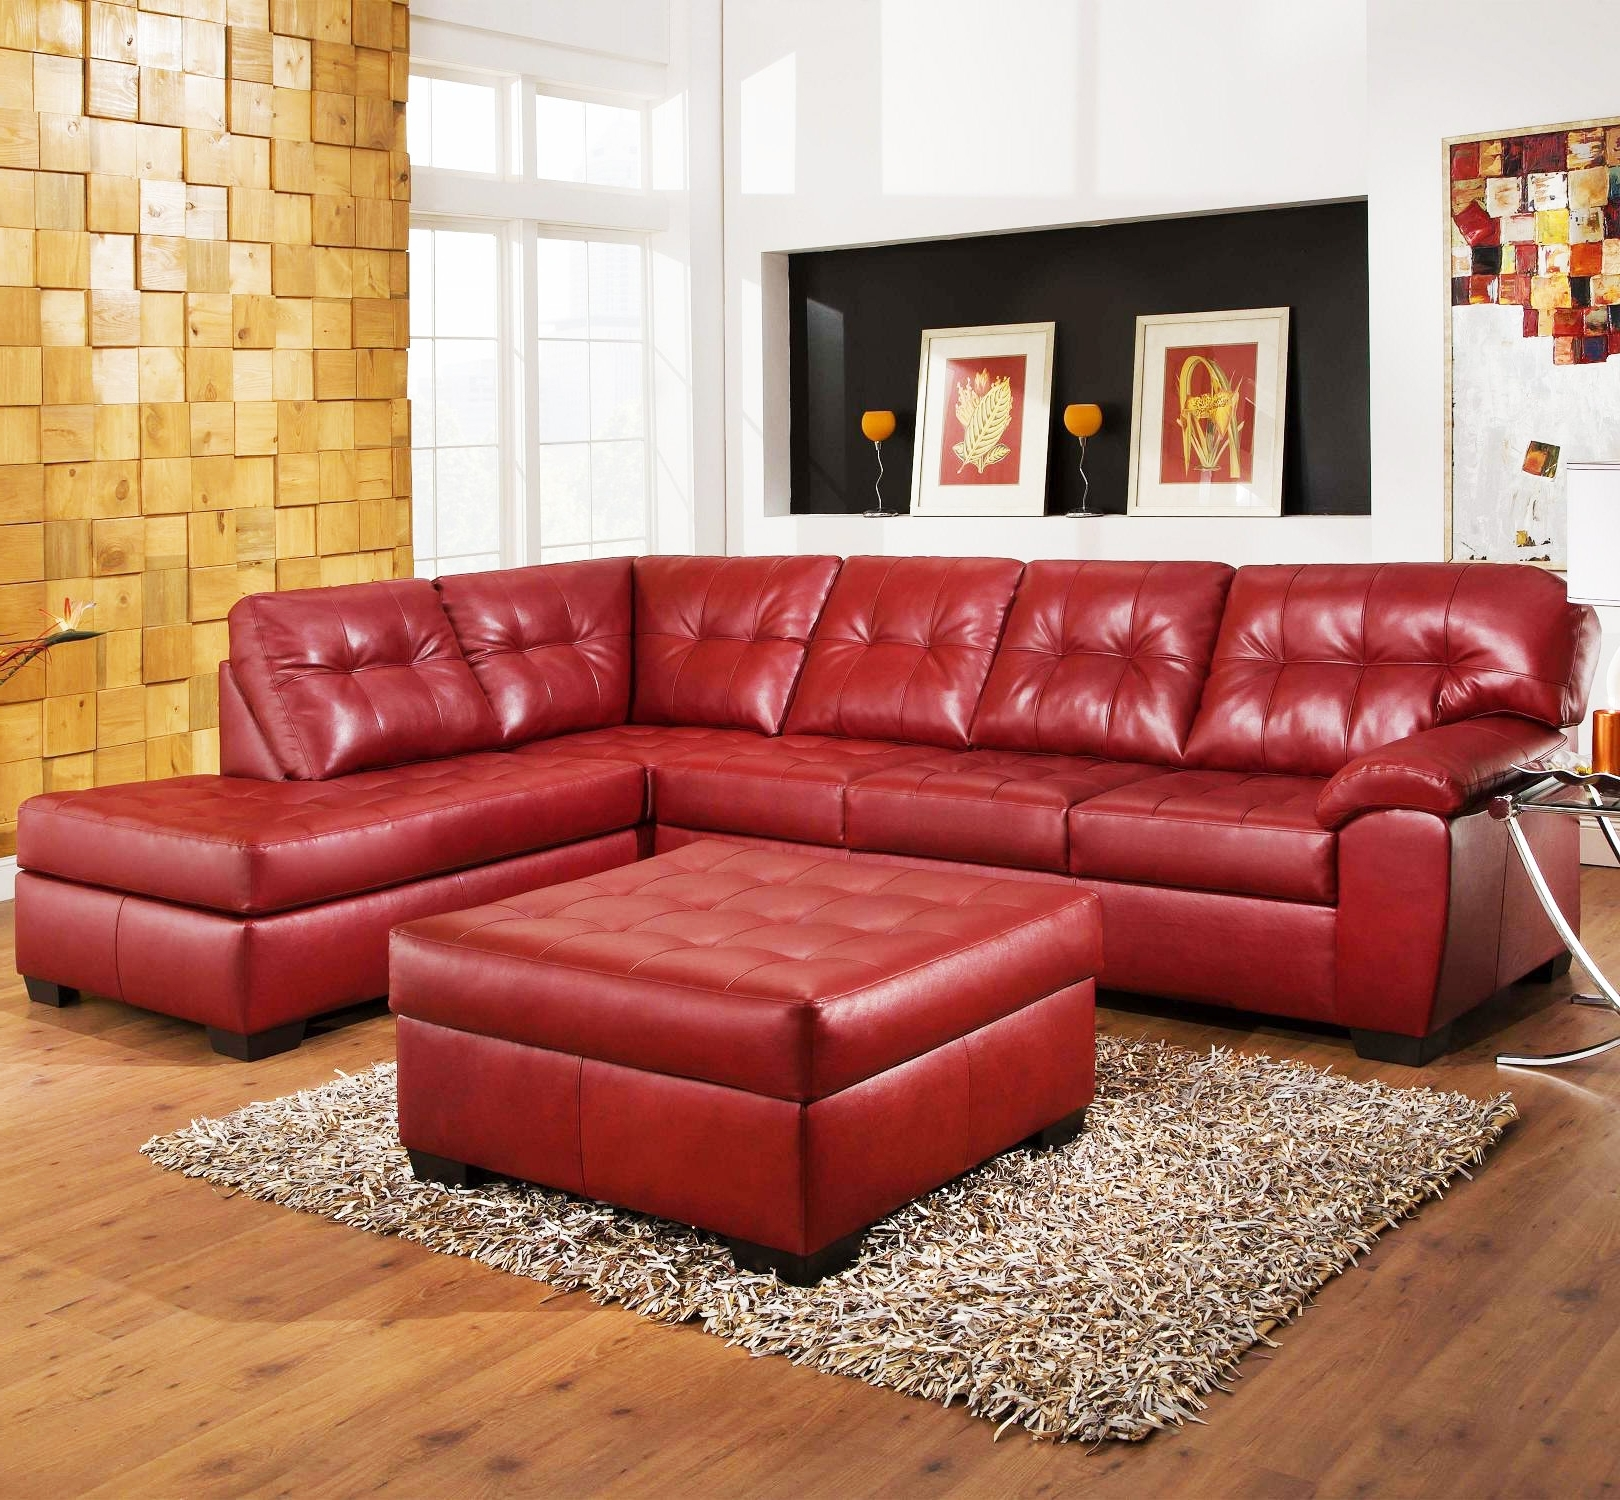 Living Room: Astonishing Rooms To Go Sectional Leather Havertys In Most Recently Released Rooms To Go Sectional Sofas (View 6 of 20)